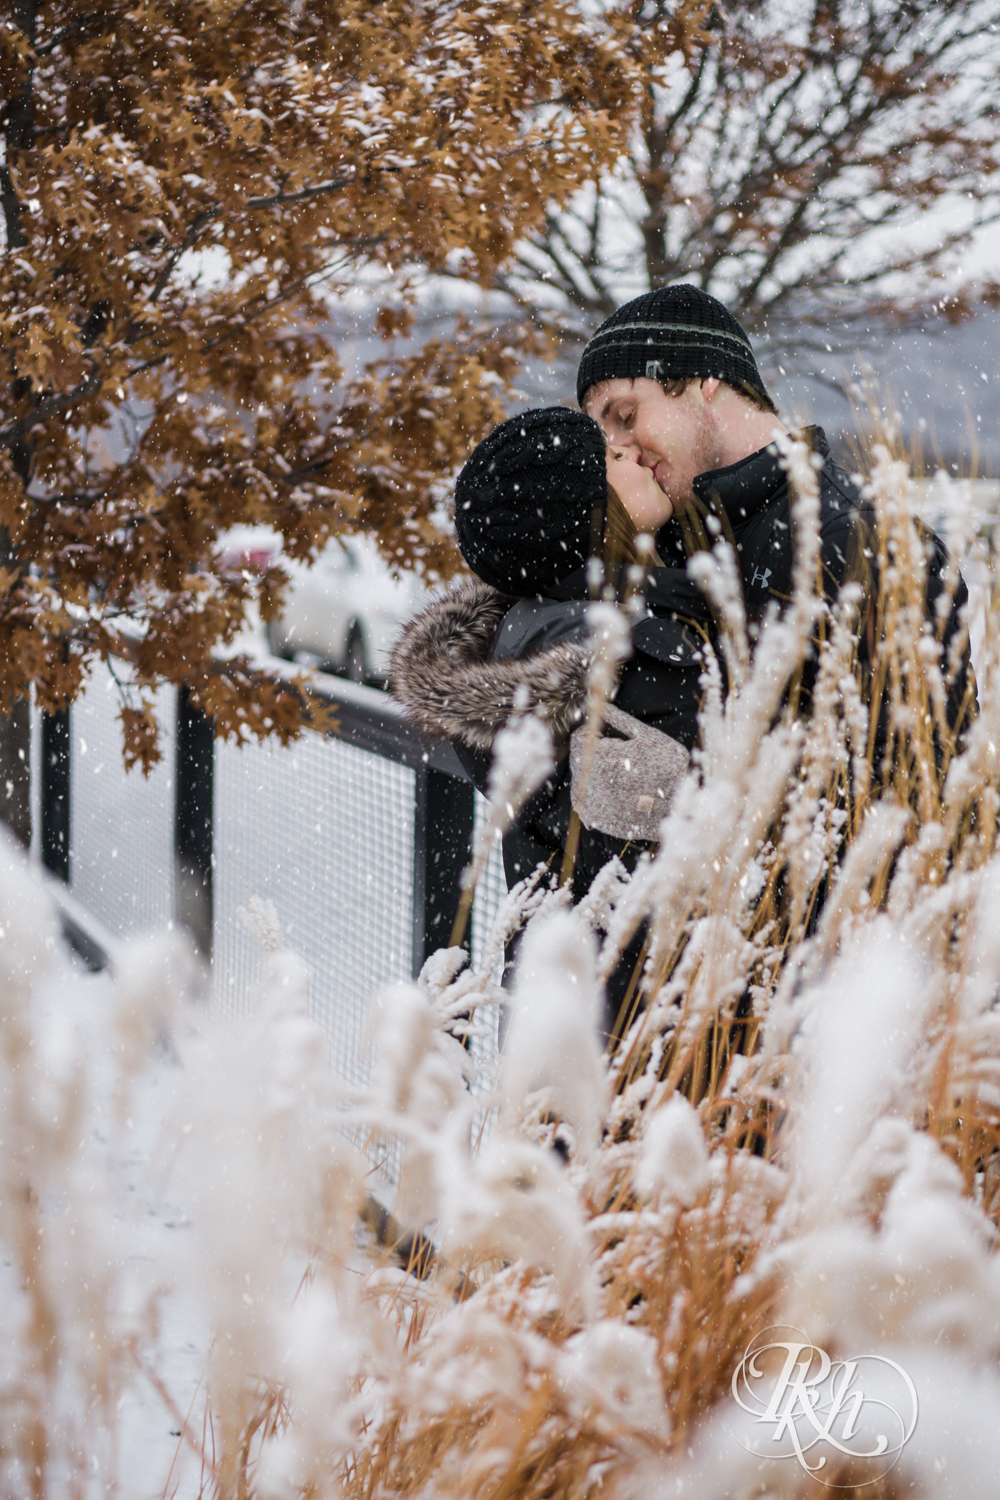 Makayla & Drew - Minnesota Winter Engagement Photography - St. Paul - RKH Images - Blog (10 of 18).jpg